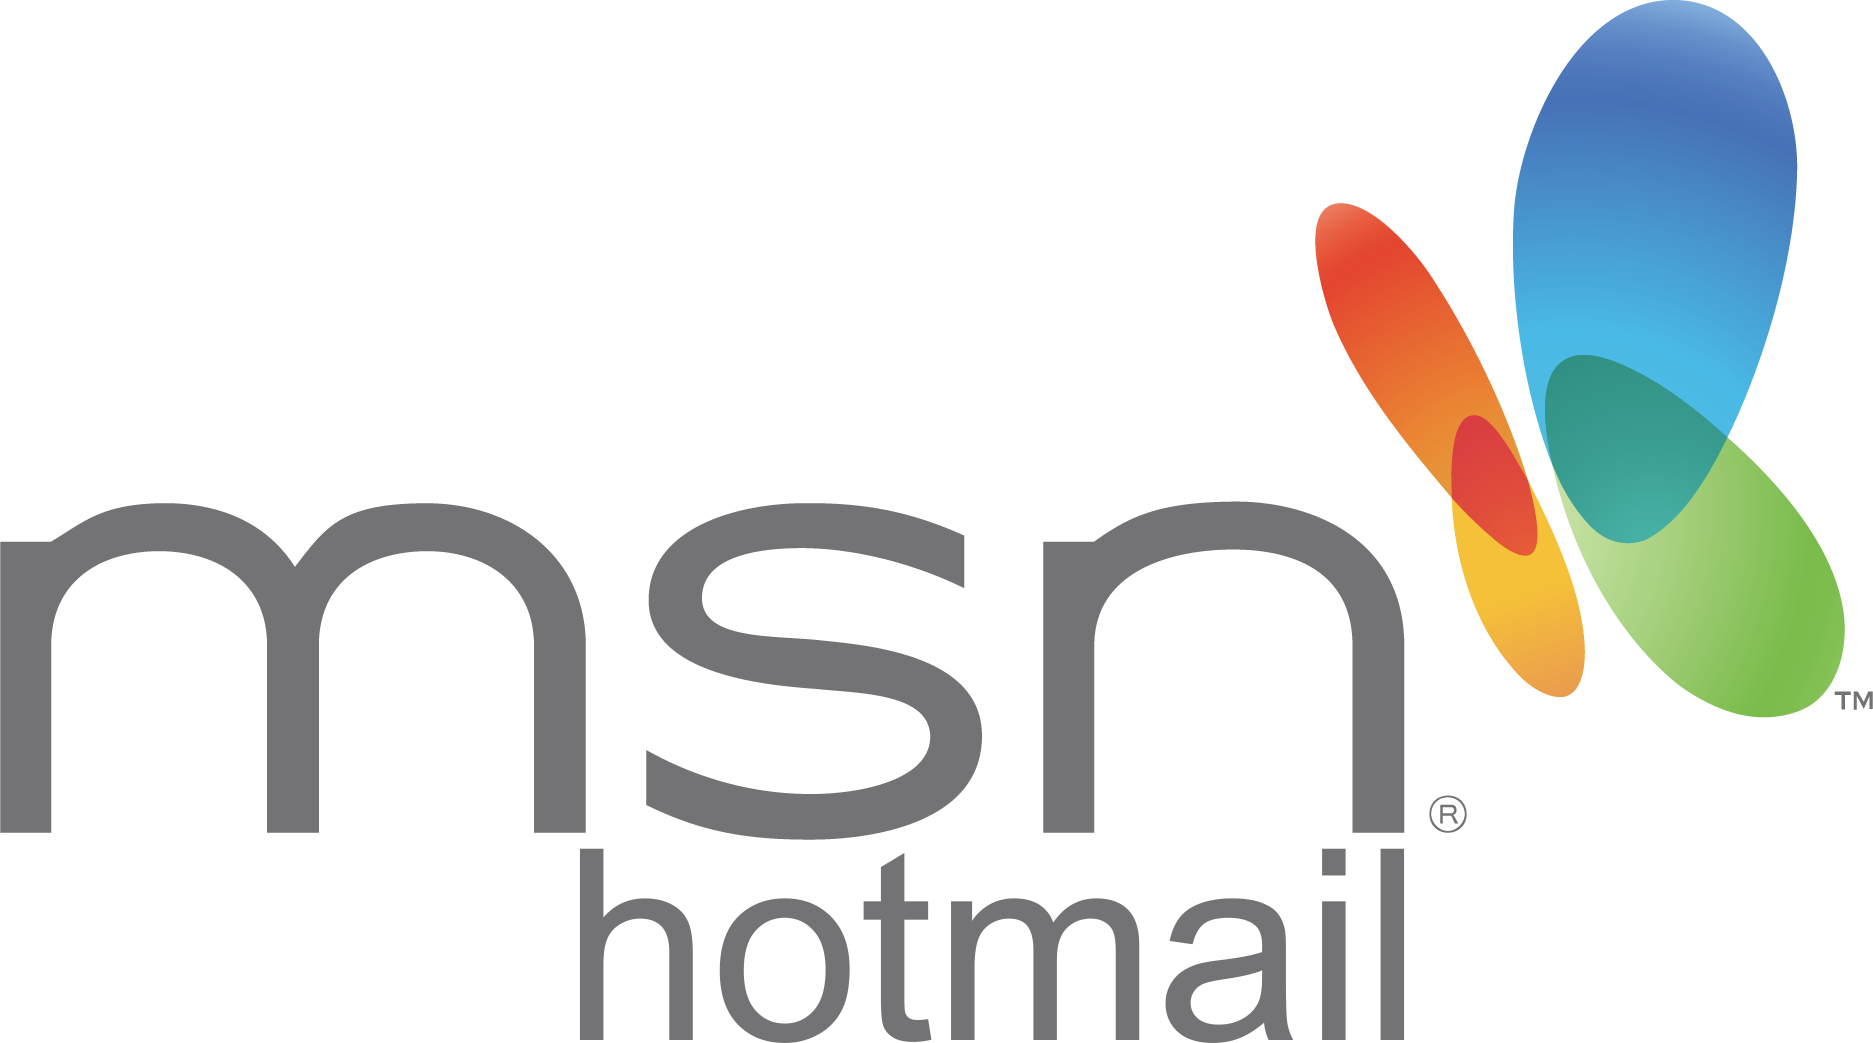 An MSN Hotmail Sign In used to be quite the status symbol